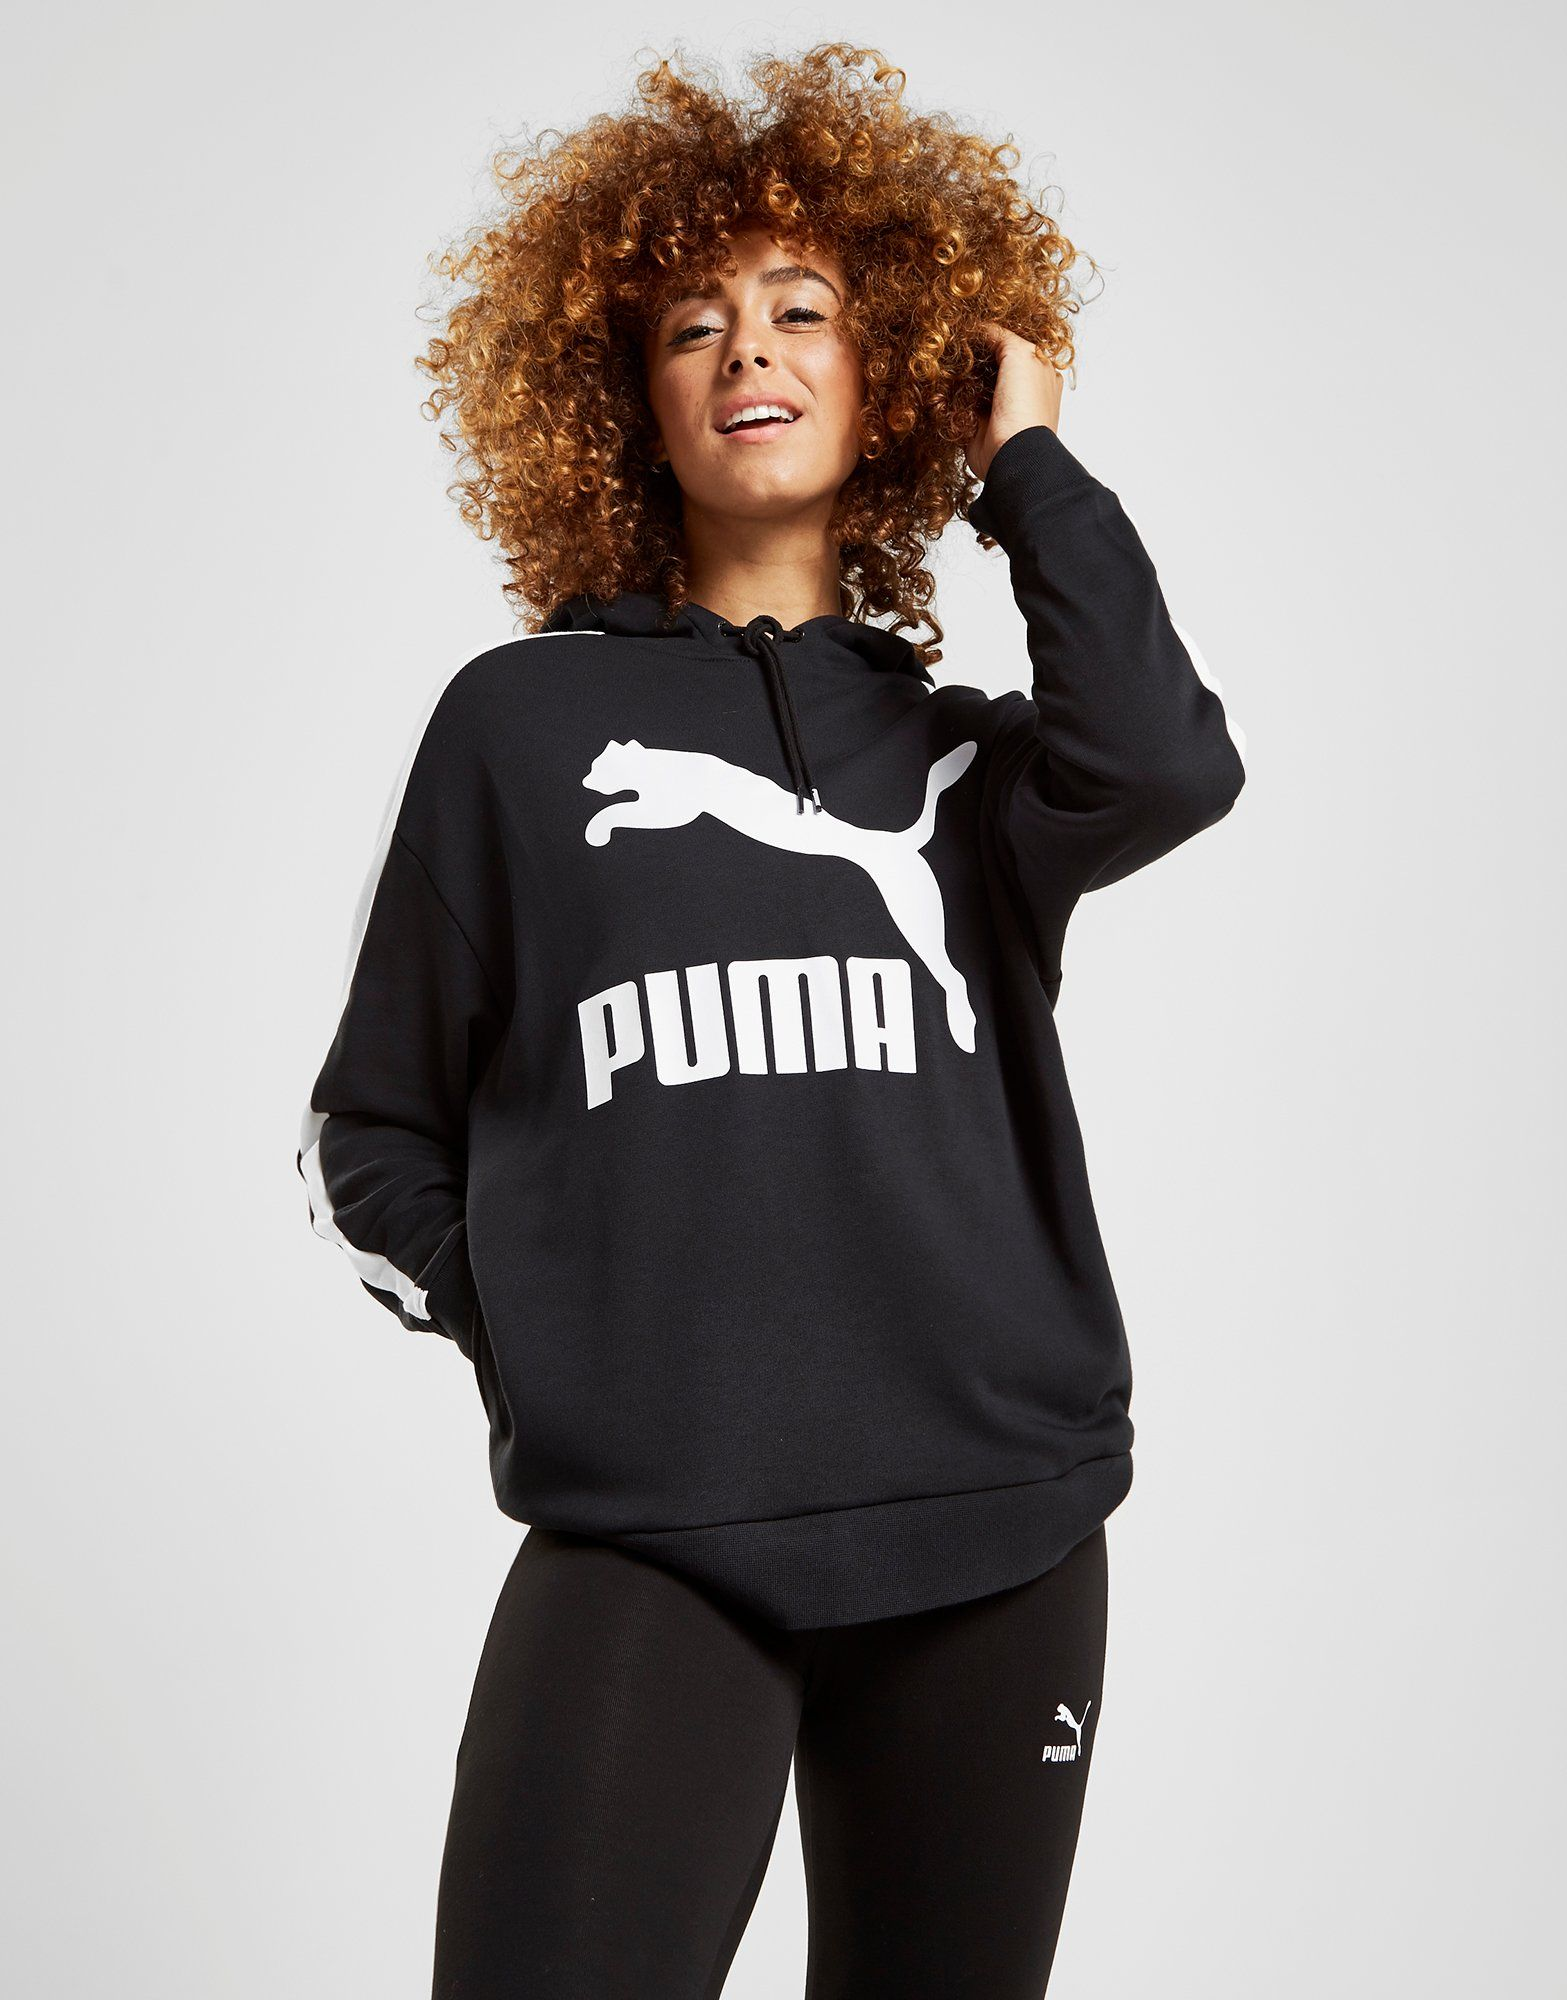 PUMA Sweat à Capuche Femme   JD Sports a45b6e56caef